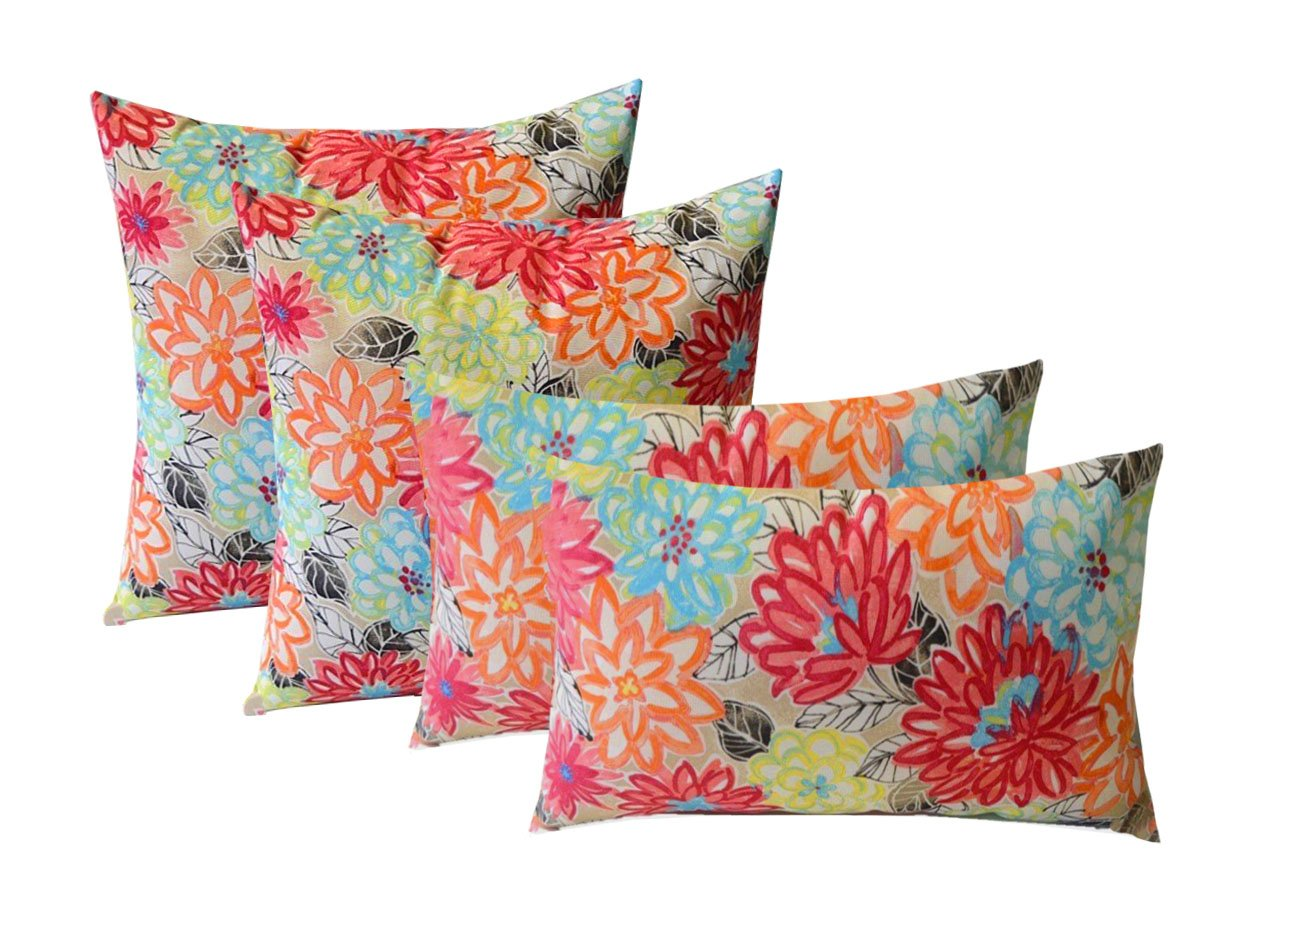 Set of 4 Indoor / Outdoor Pillows - 17'' Square Throw Pillows & 12'' x 20'' Rectangle / Lumbar Decorative Throw Pillows - Yellow, Orange, Blue, Pink Bright Artistic Floral by Resort Spa Home